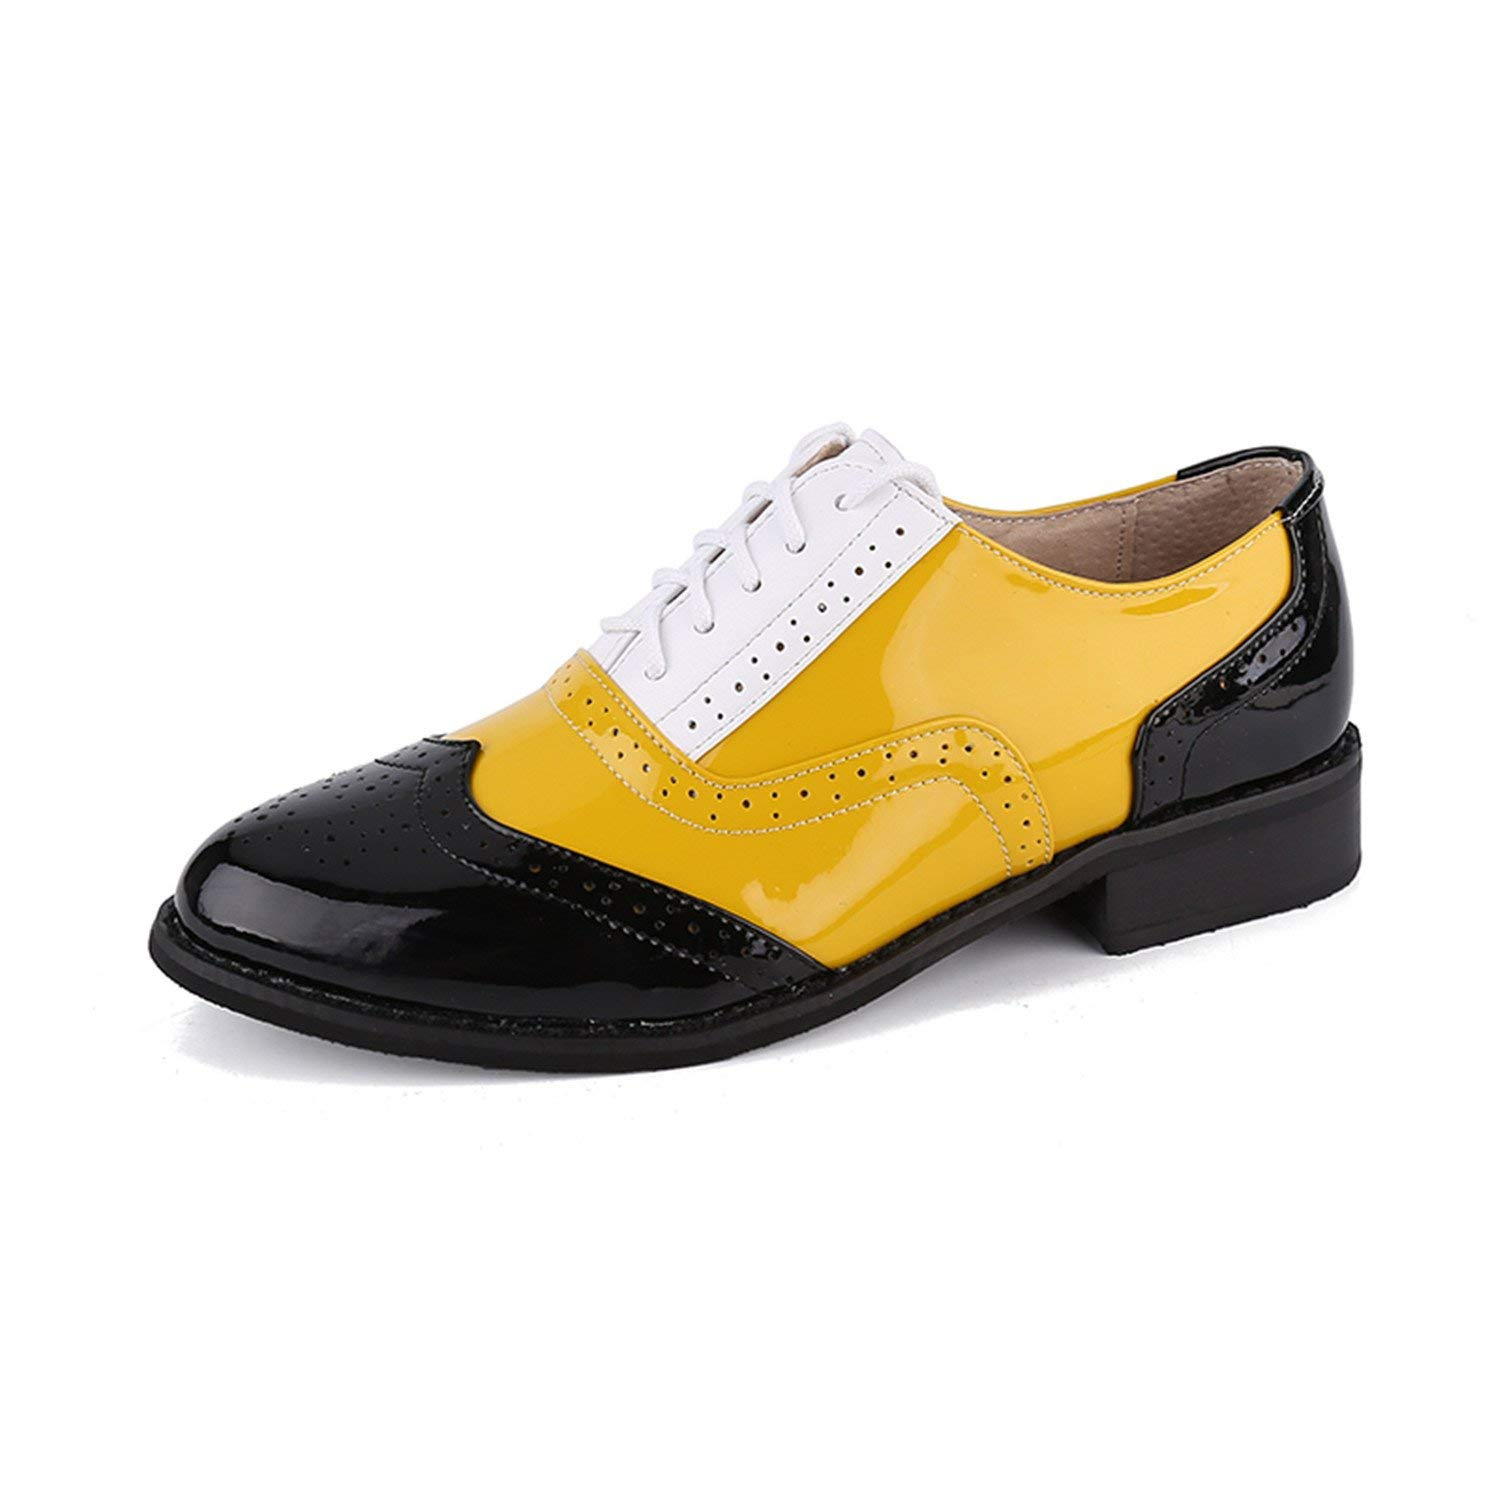 ec8991a47a59 Get Quotations · Aancy Shoes Female Yellow Patent Leather Flat Shoes Plus  Size Oxford Shoes Zapatos Oxford 3-